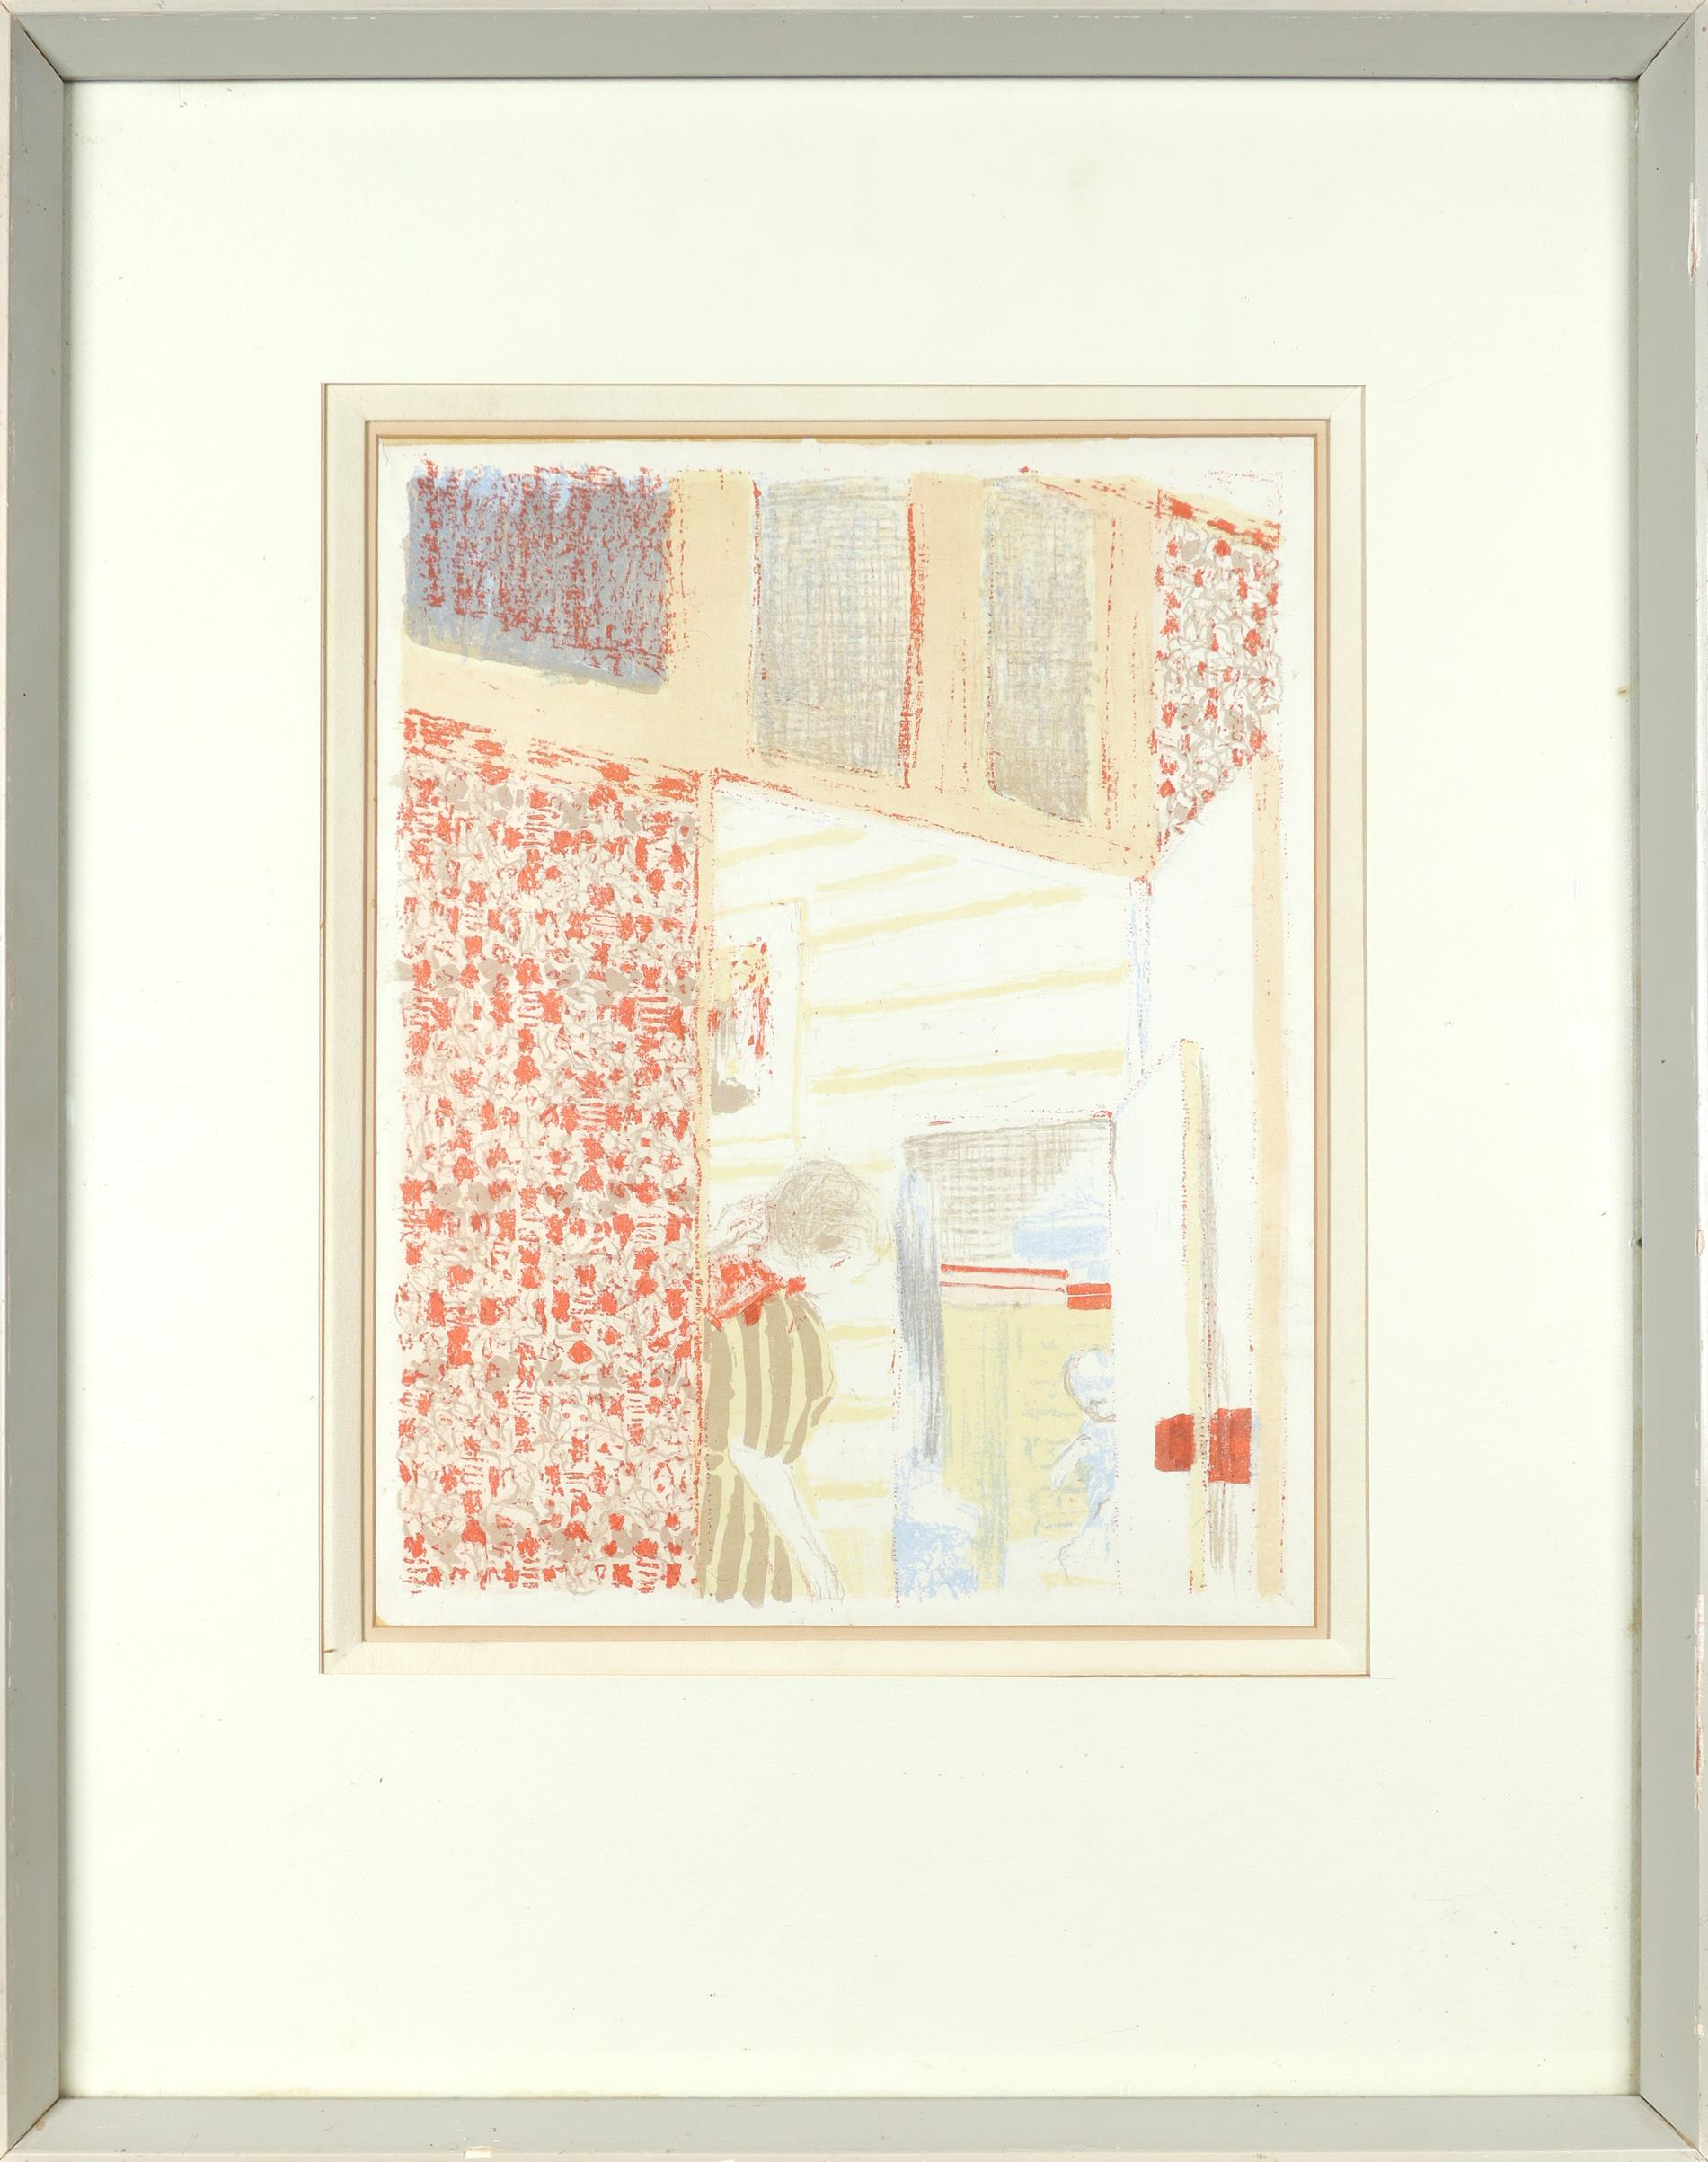 Édouard Vuillard (French 1868-1940) Interior with Pink Wallpaper III (Intérieur aux tentures roses - Image 2 of 3